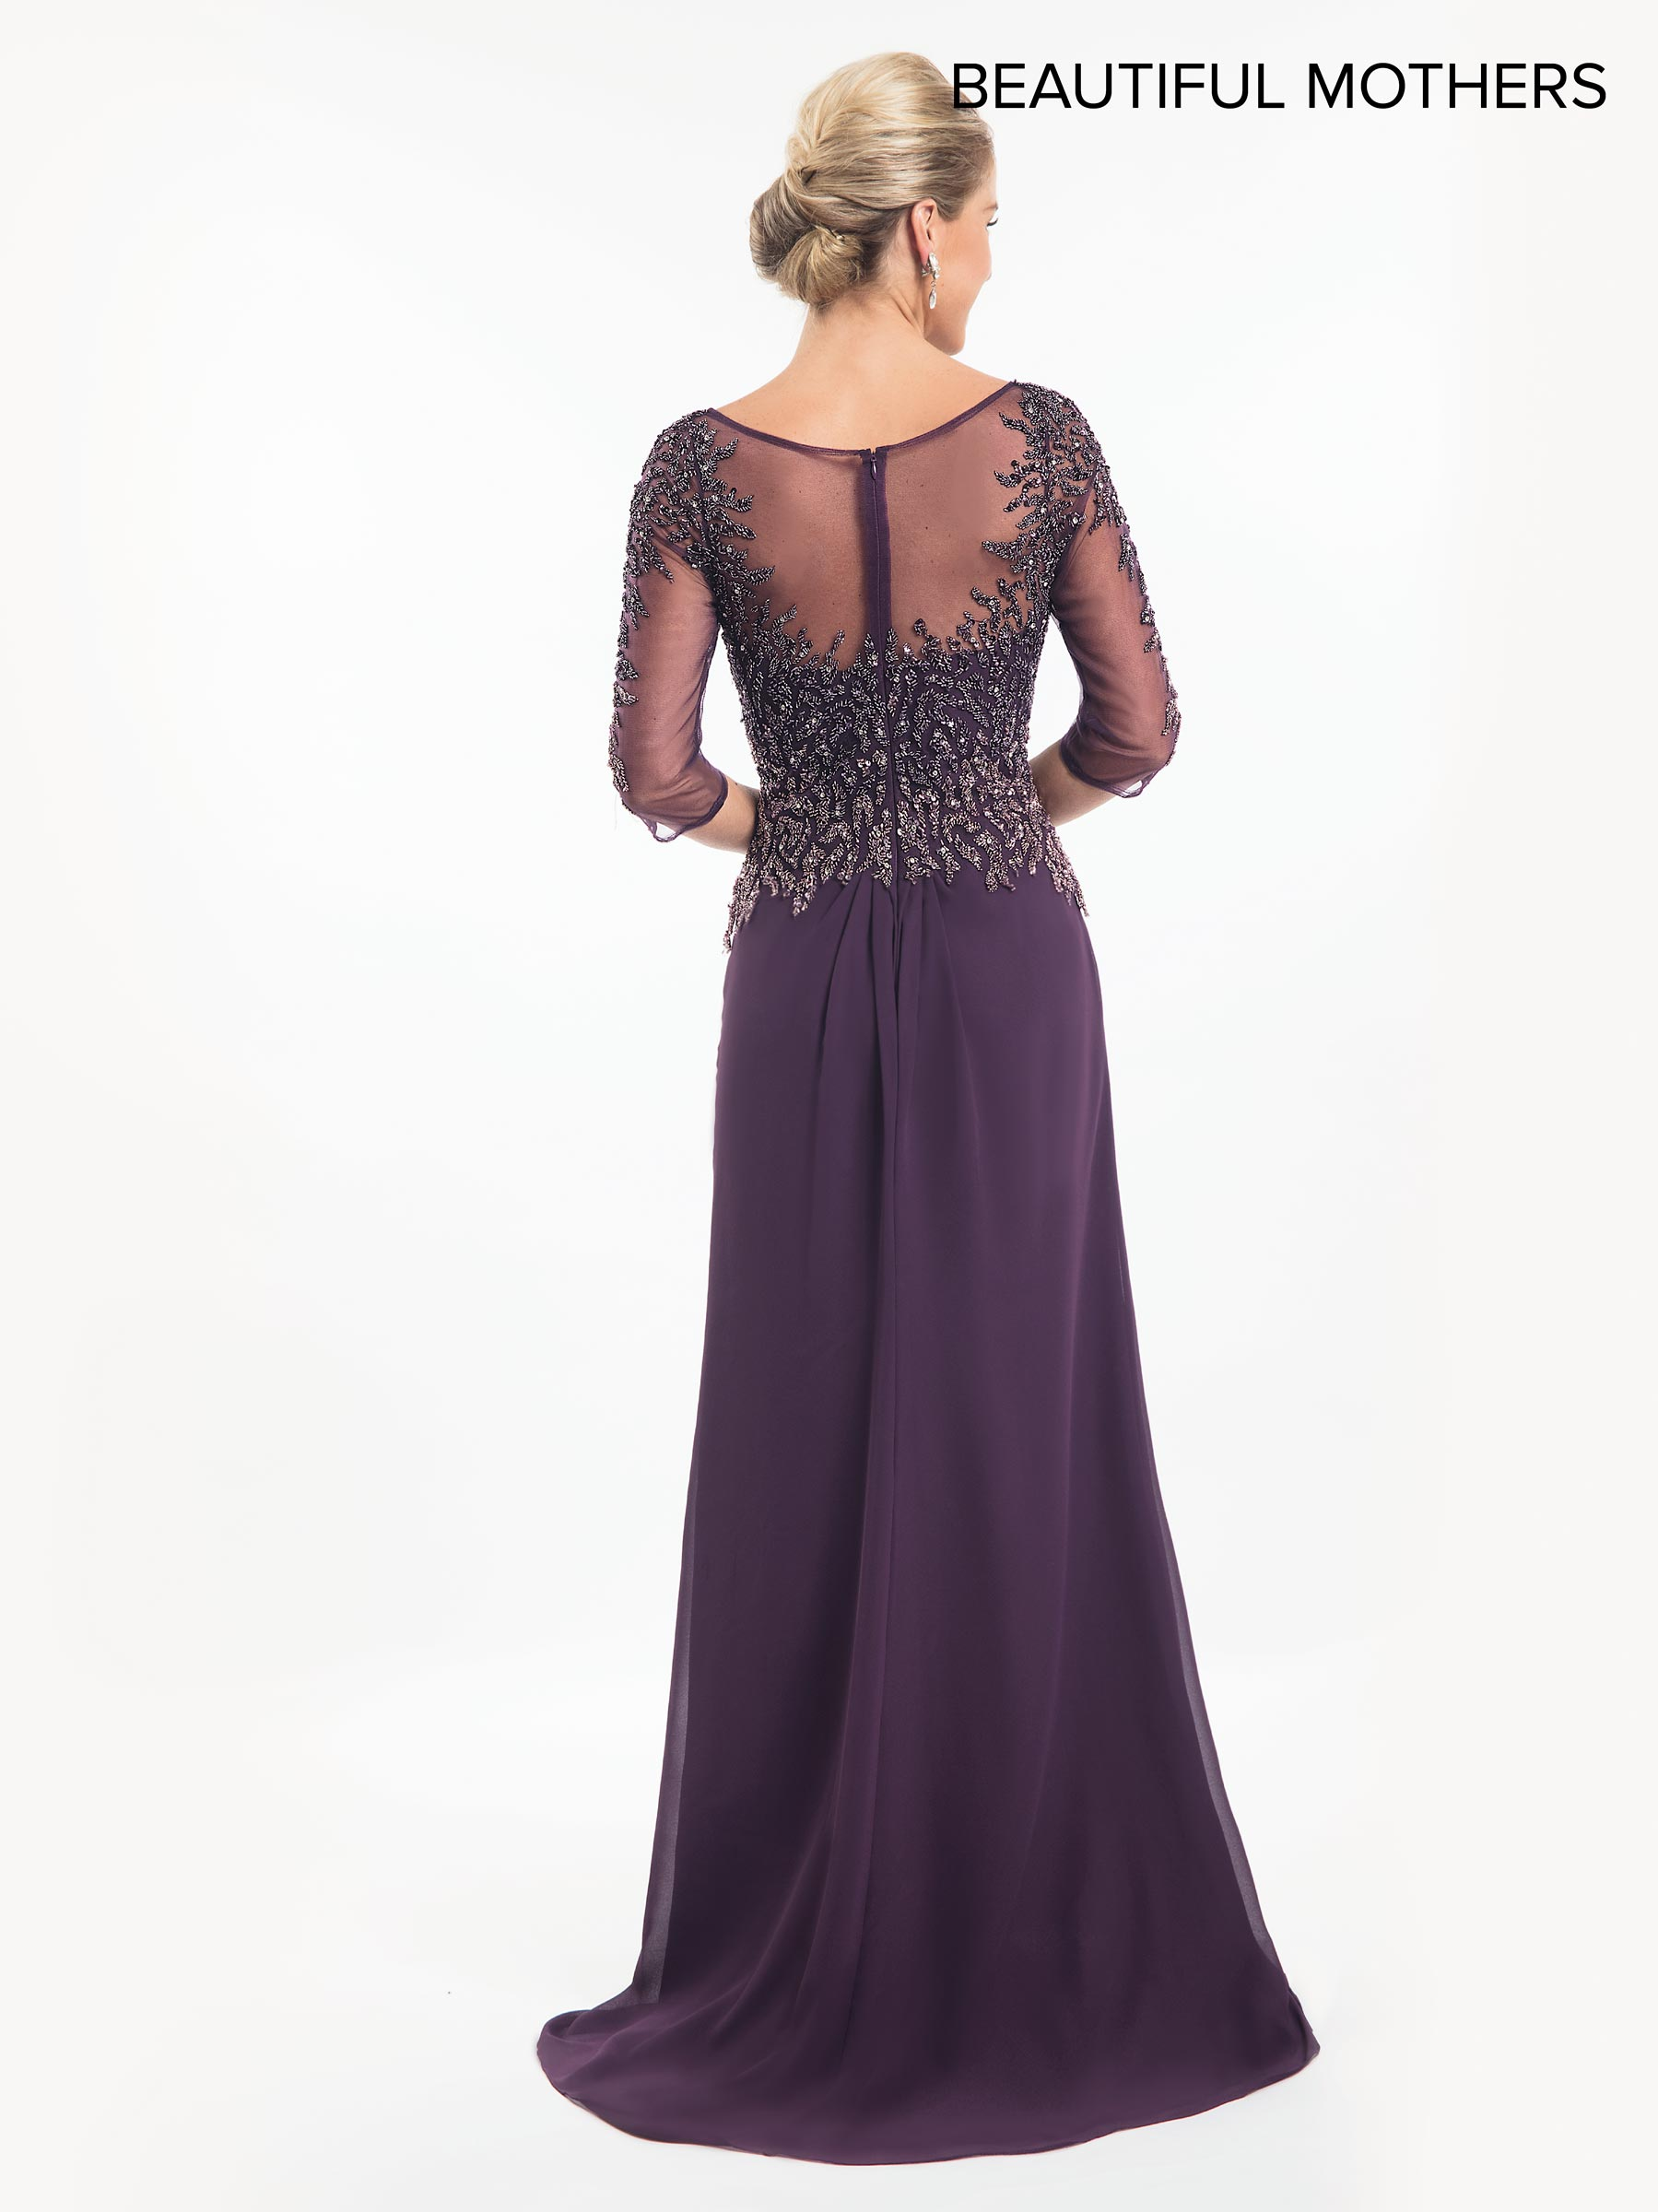 Mother Of The Bride Dresses | Beautiful Mothers | Style - MB8014